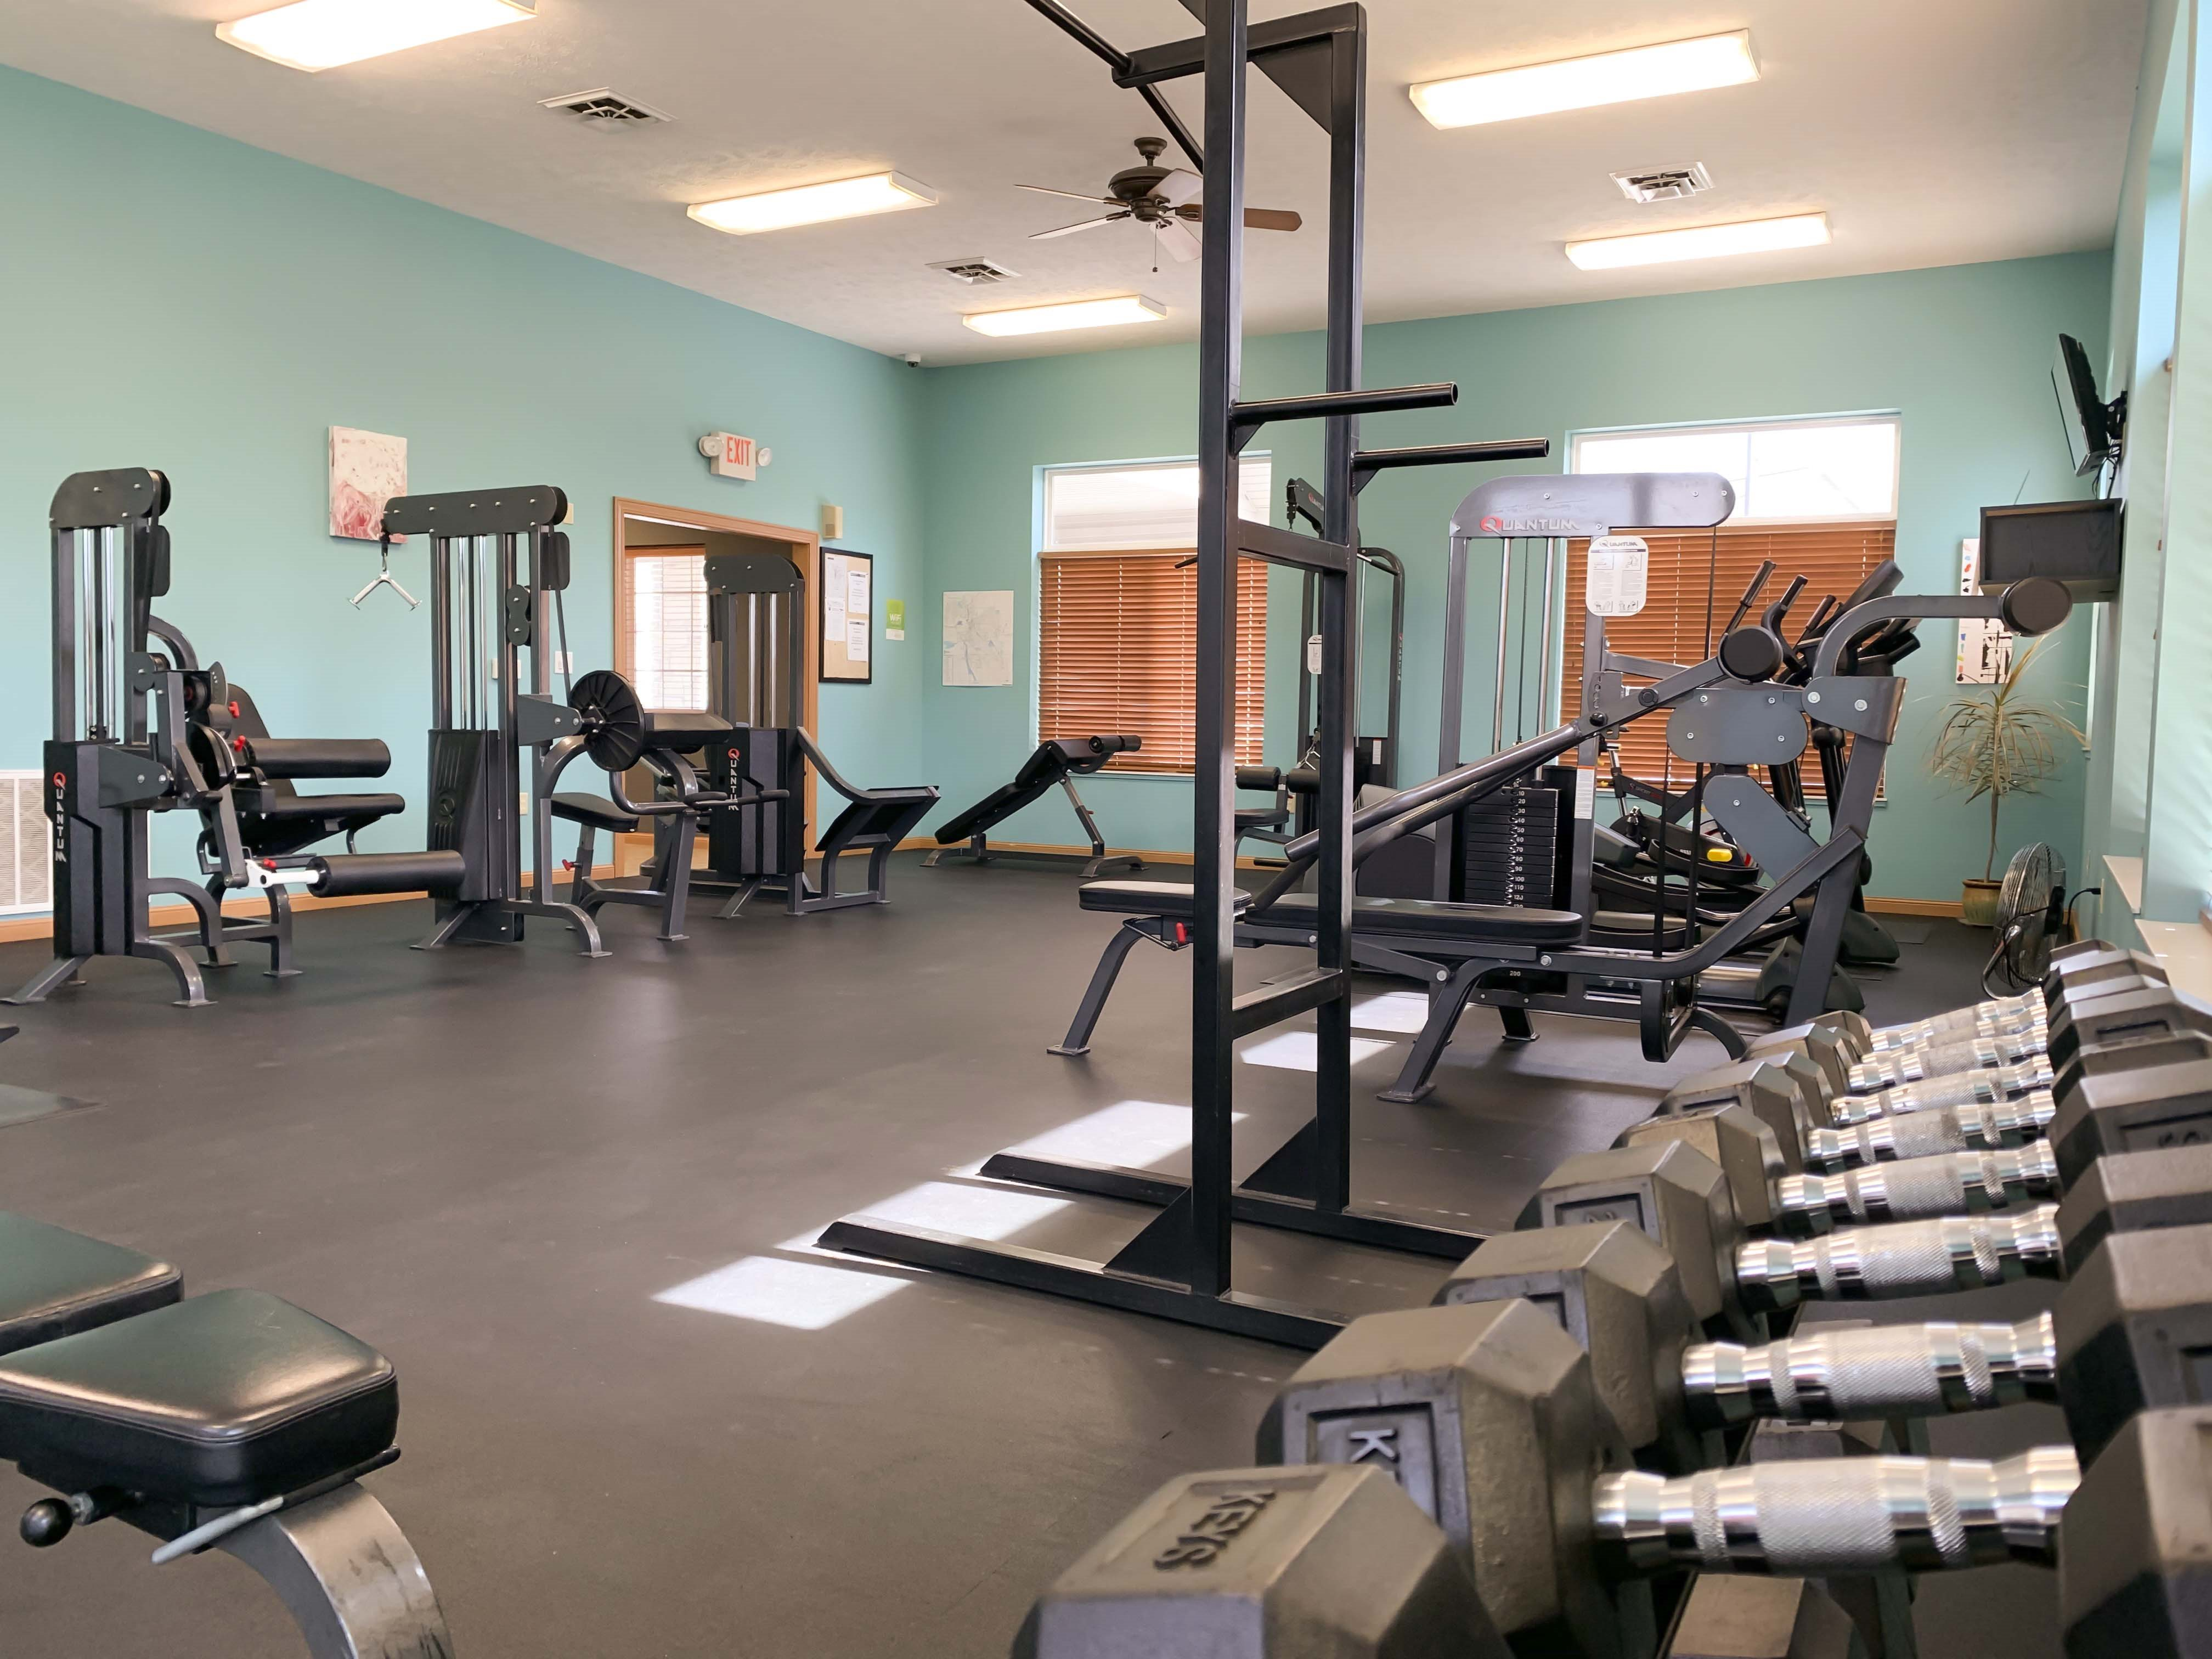 The spacious exercise room at Stone Ridge Estates features a wide variety of machines and free weights